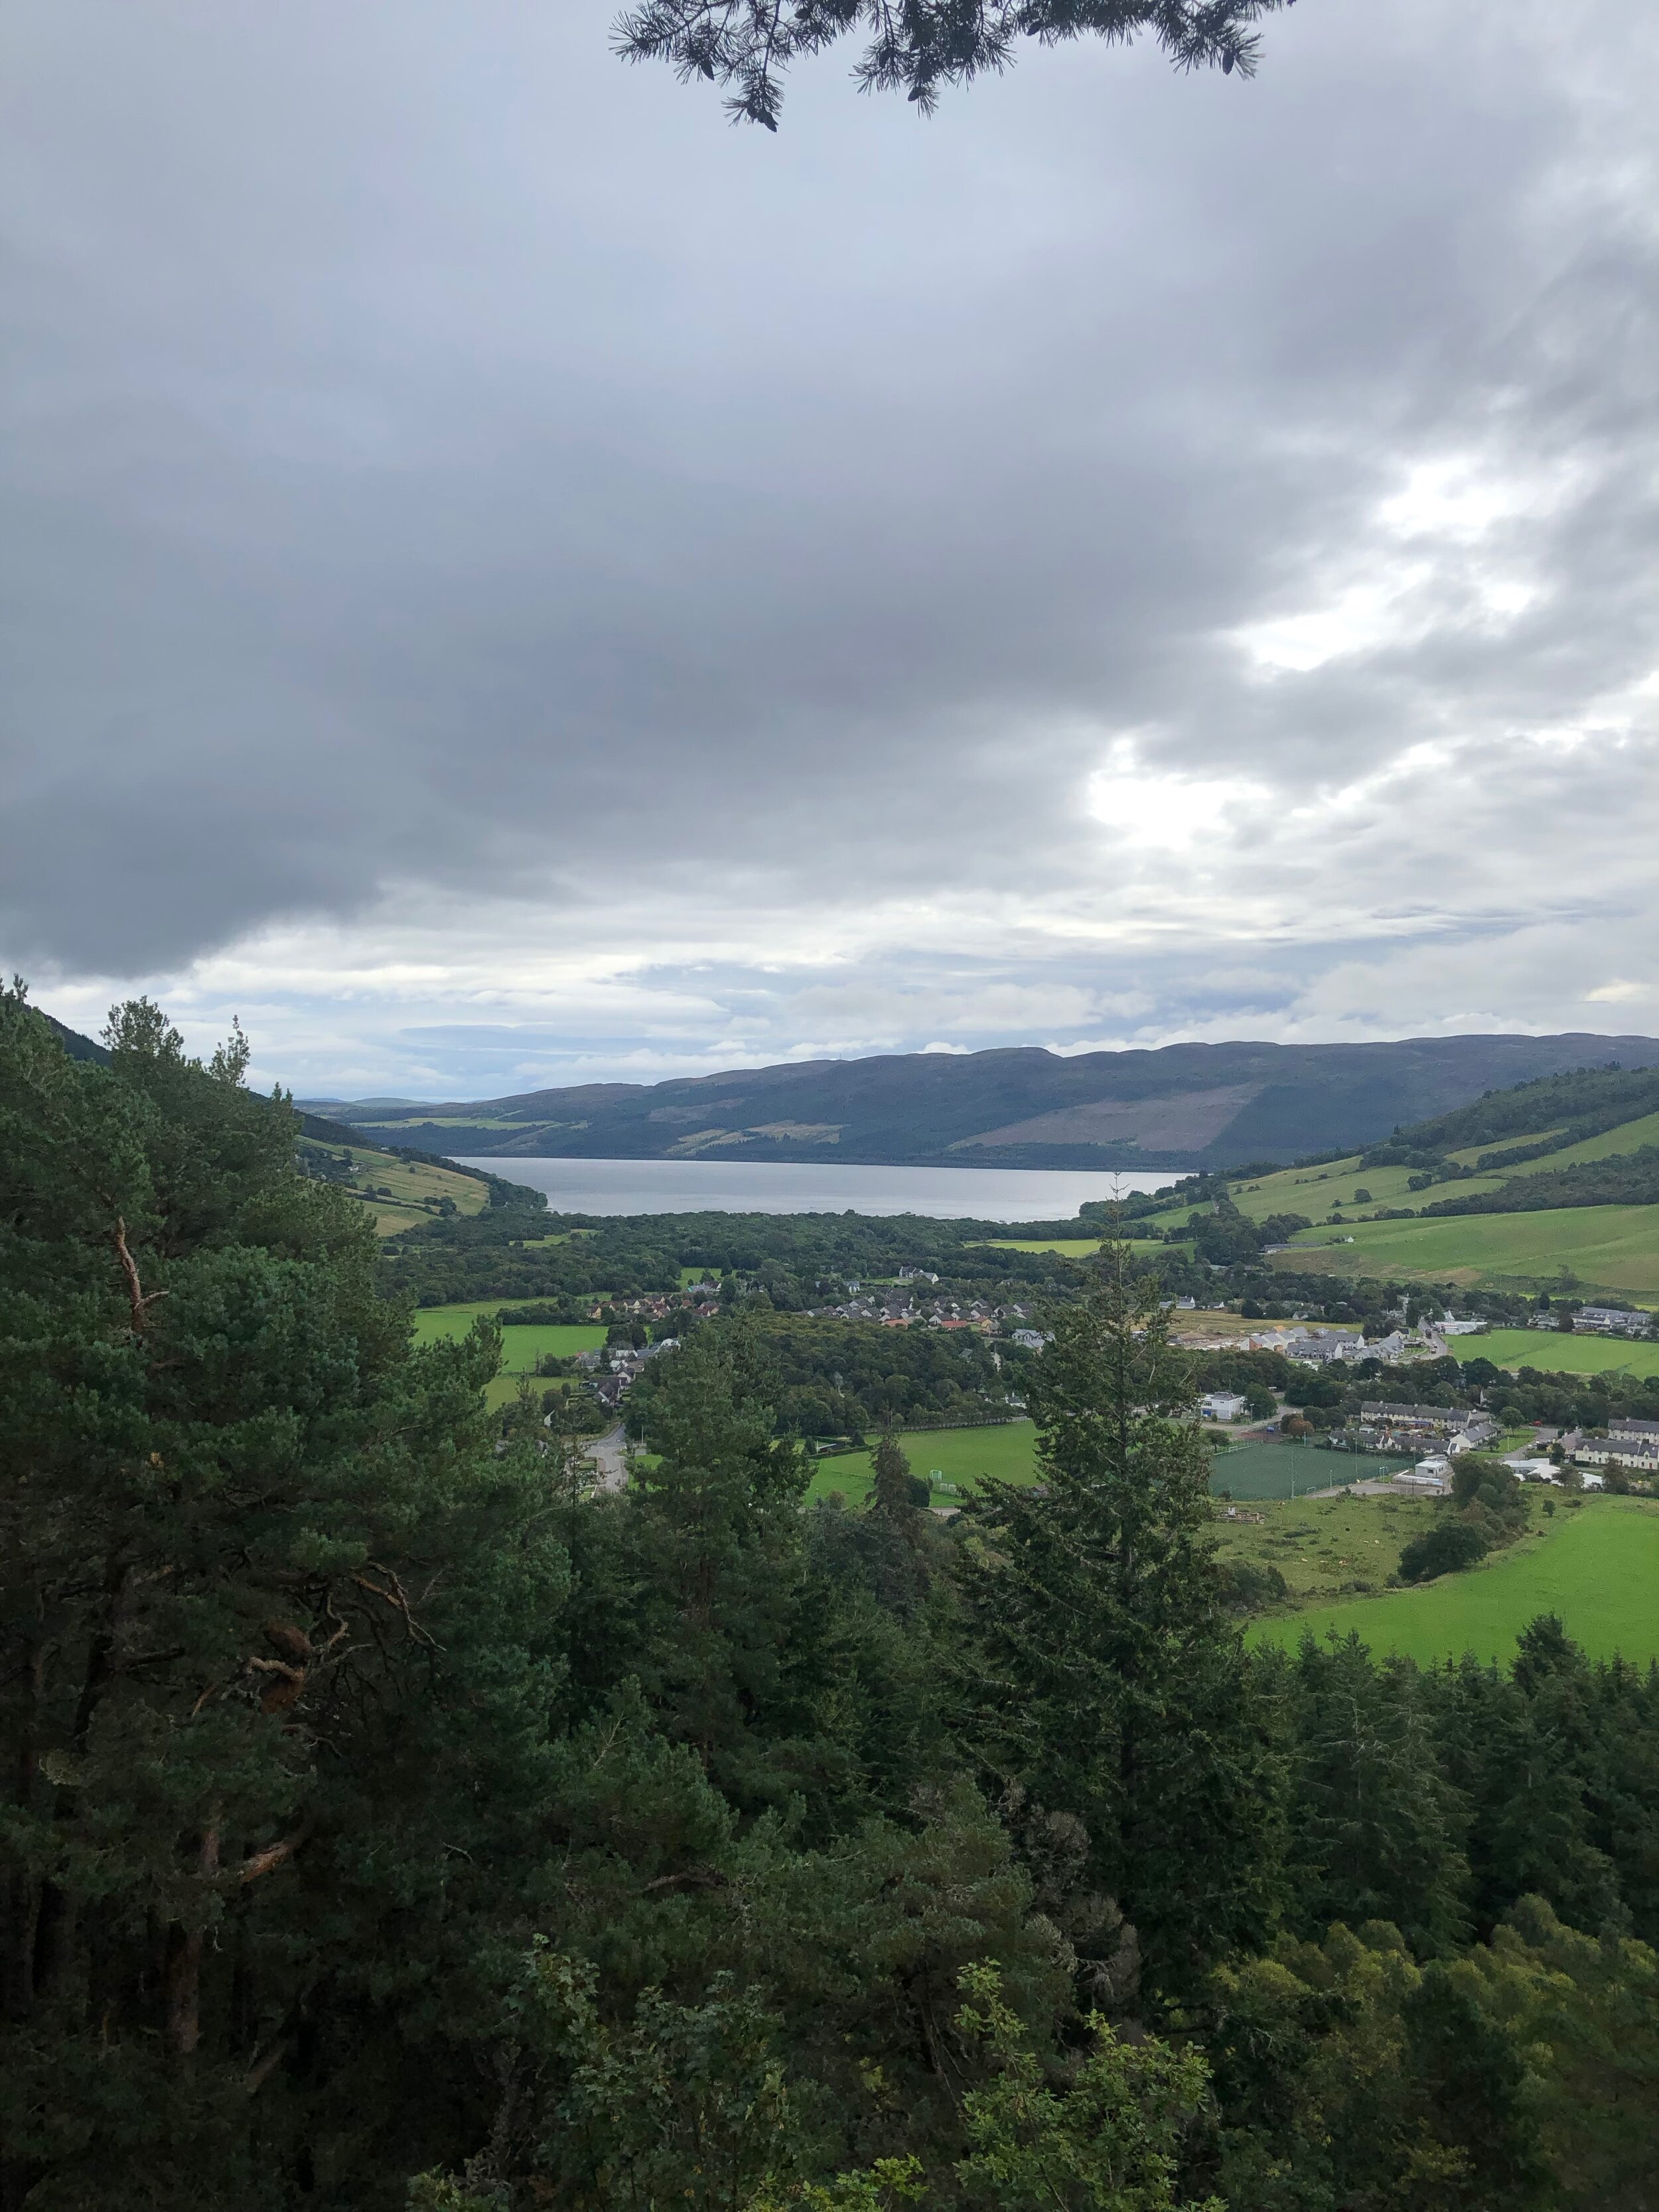 There she is - Loch Ness looms.